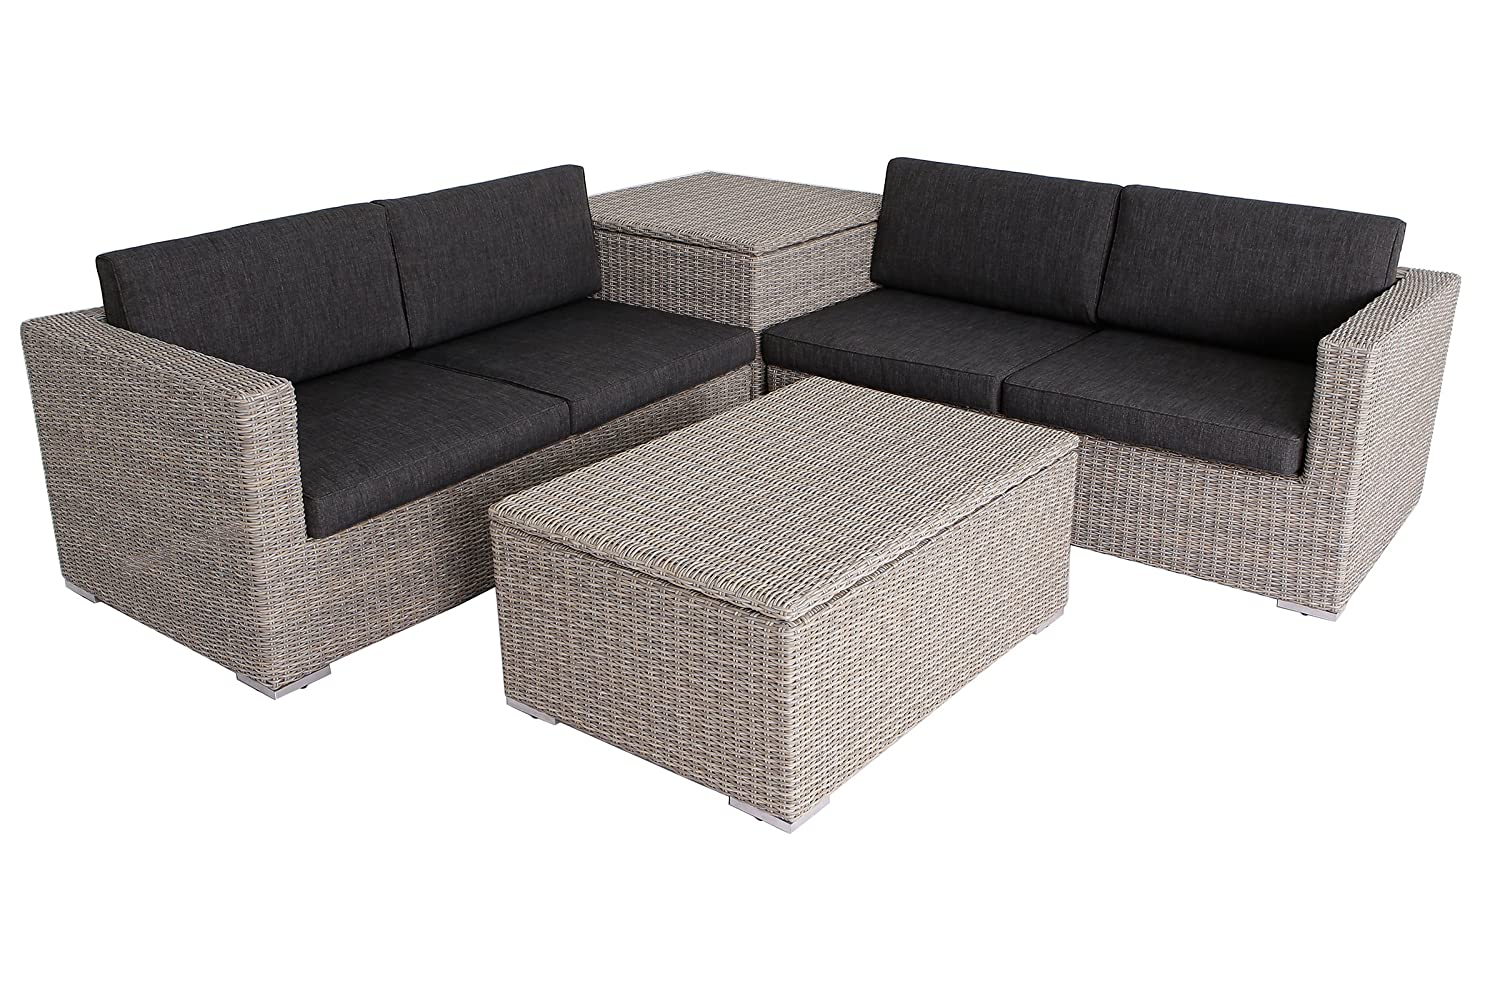 villana exklusive loungegruppe gartenlounge aus hochwertigem polyrattan in braun grau f r 4. Black Bedroom Furniture Sets. Home Design Ideas